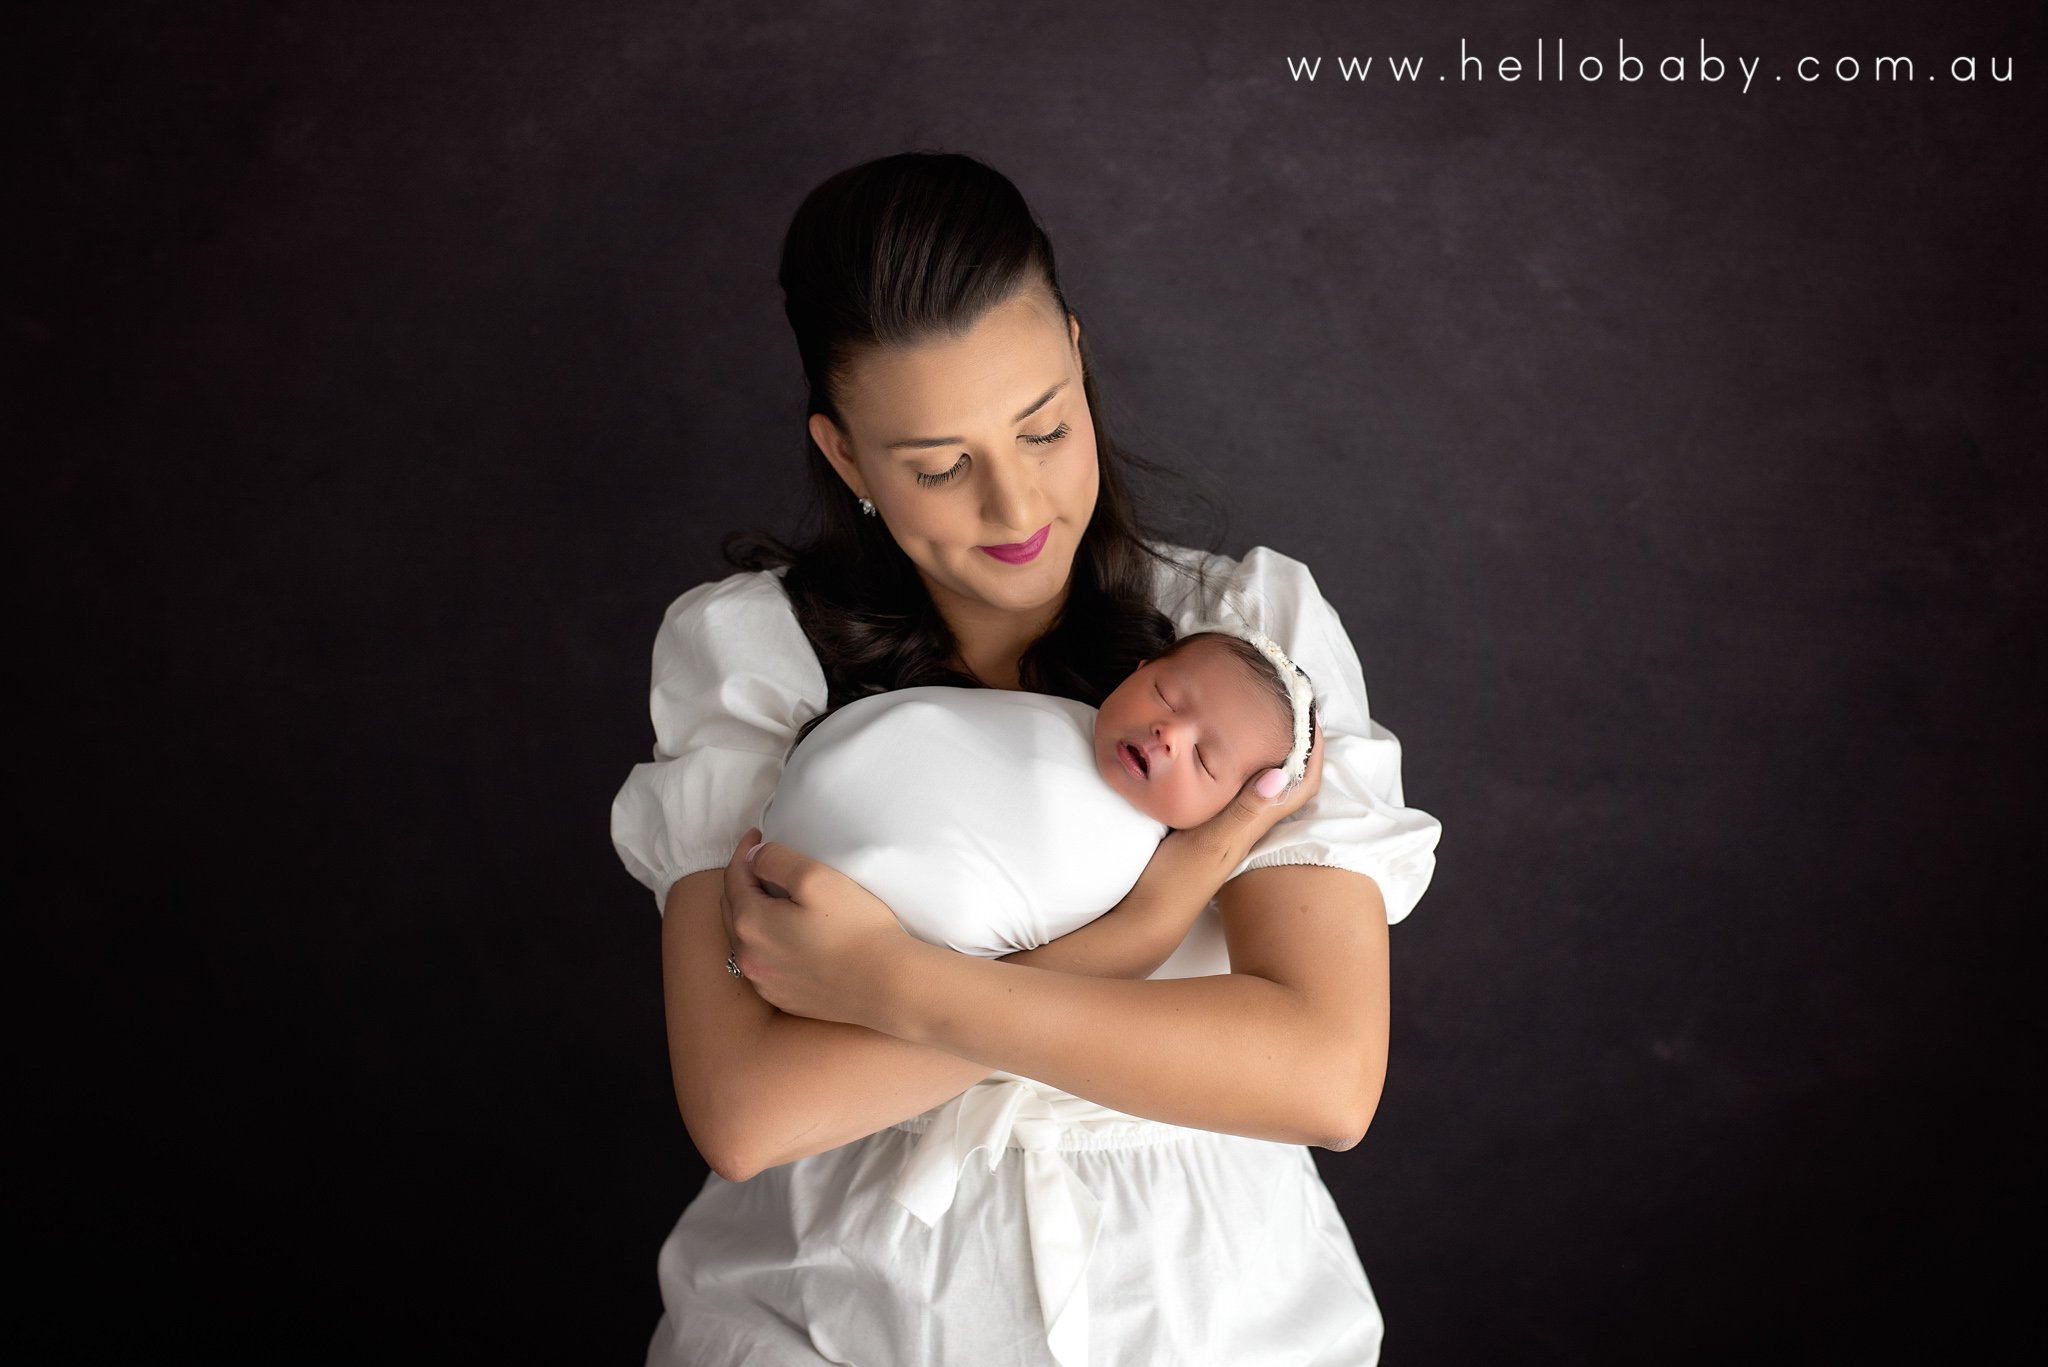 A new mum holding her brand new baby girl. Mum is wearing a simple yet elegant white dress while baby is wrapped in white